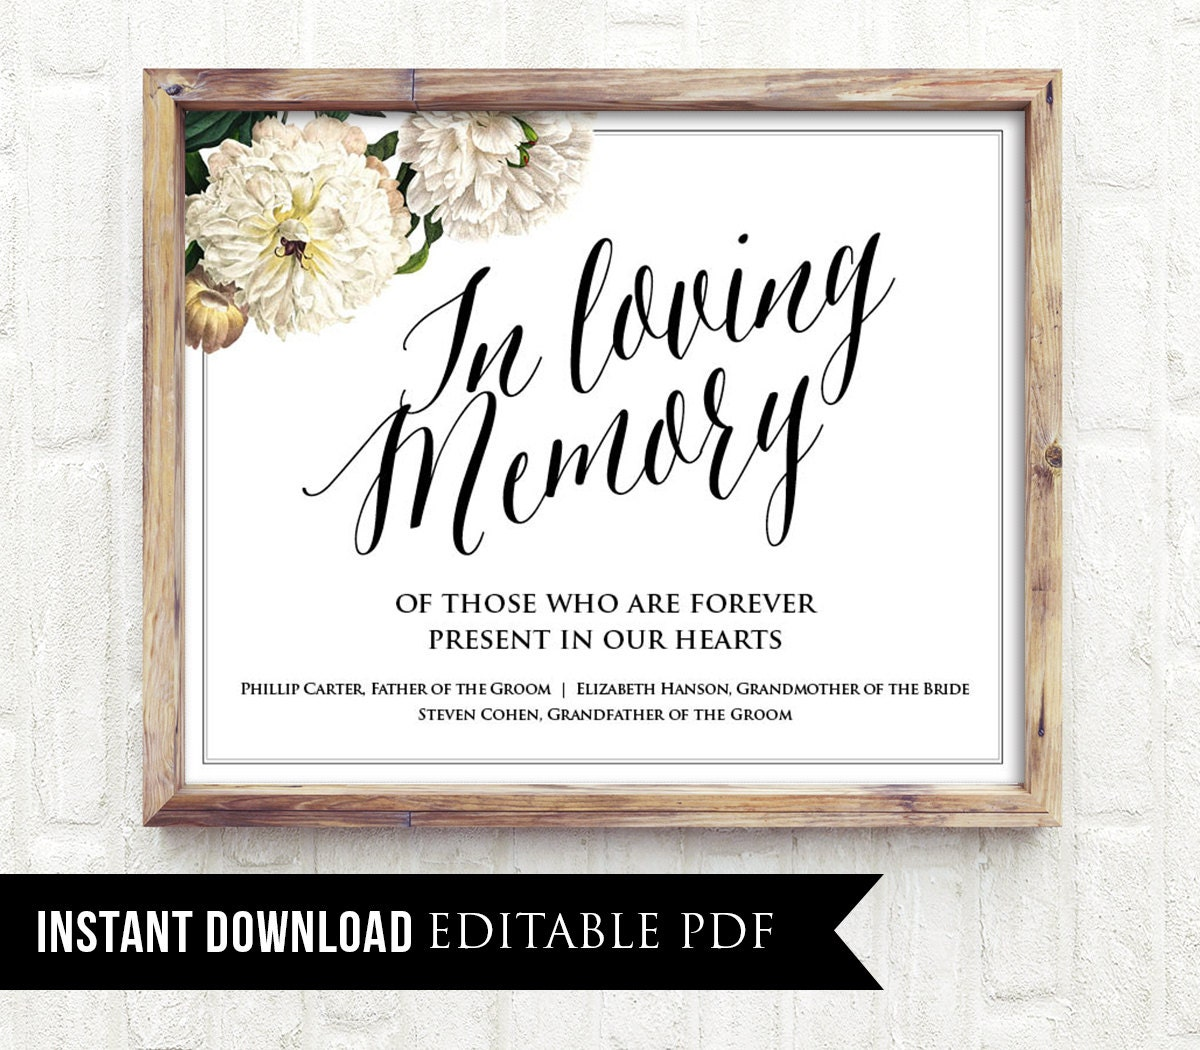 50% off, editable wedding sign, in loving memory sign template, Powerpoint templates